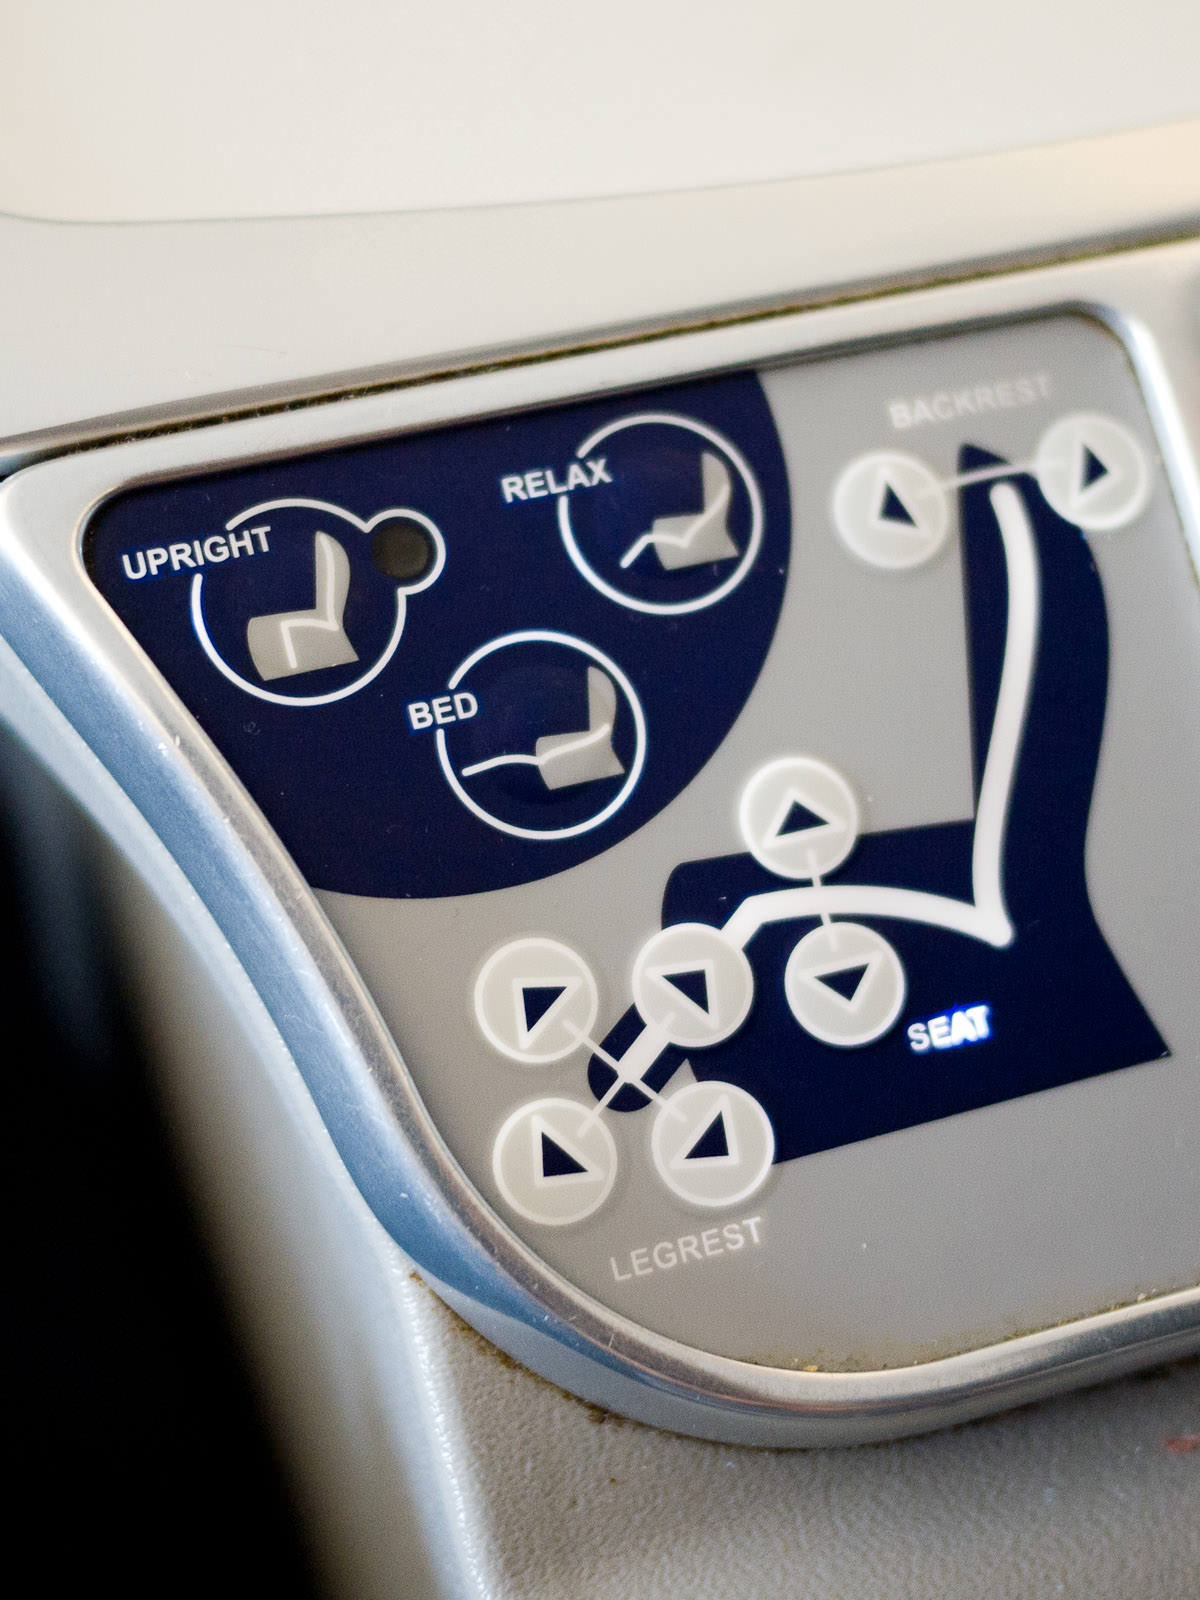 Adjustable seat controls